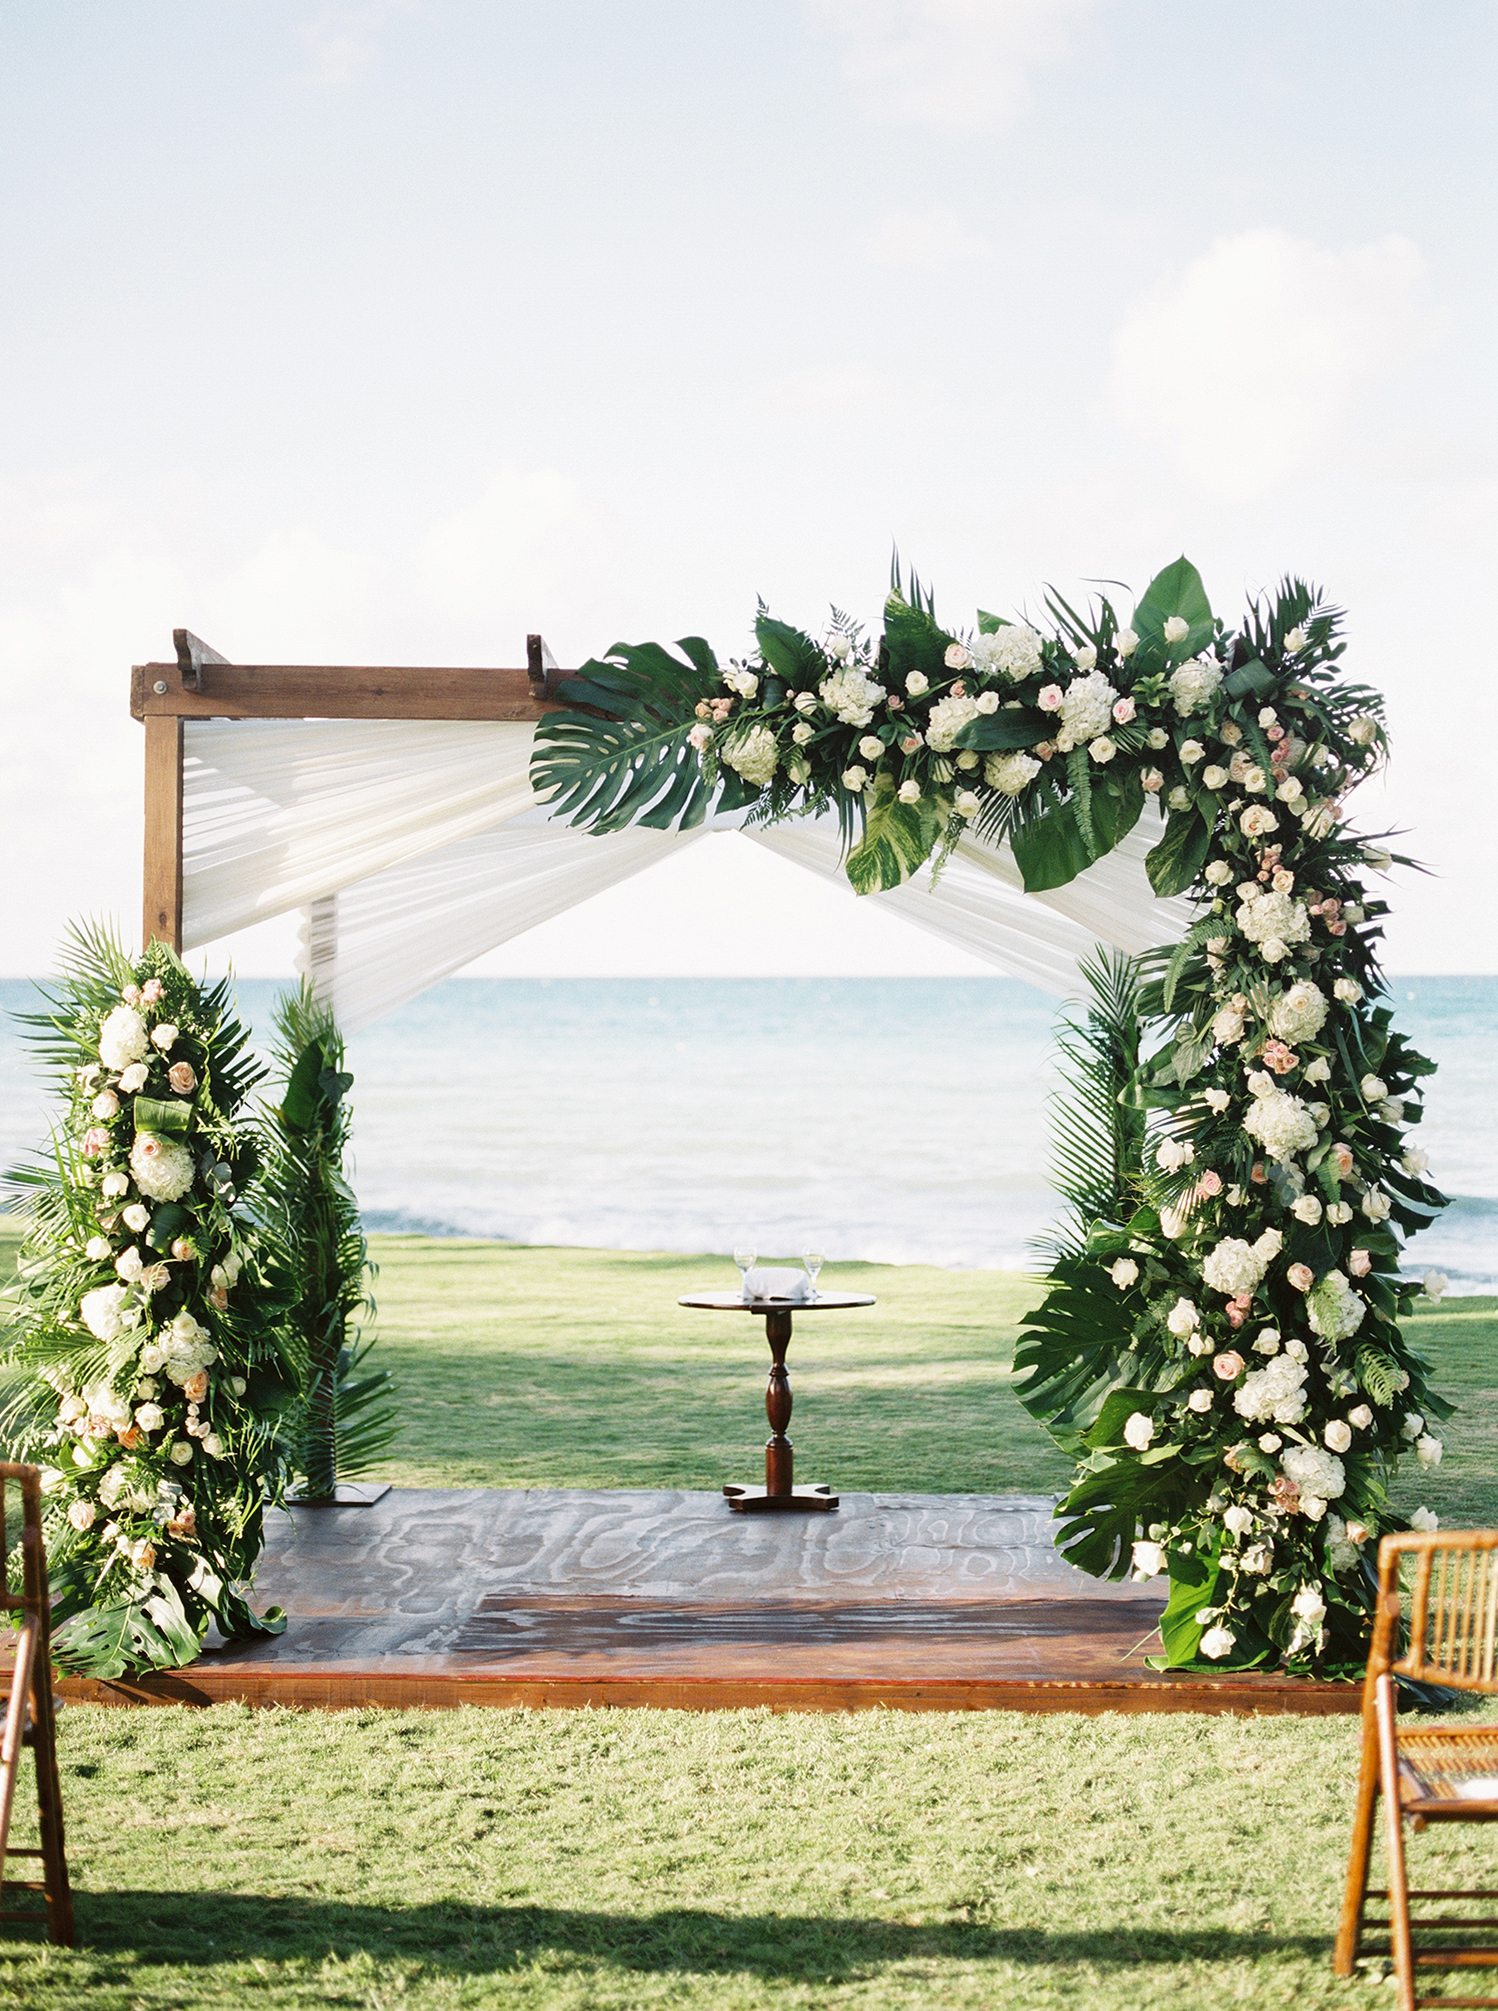 abbey jeffrey wedding ceremony site with chuppah